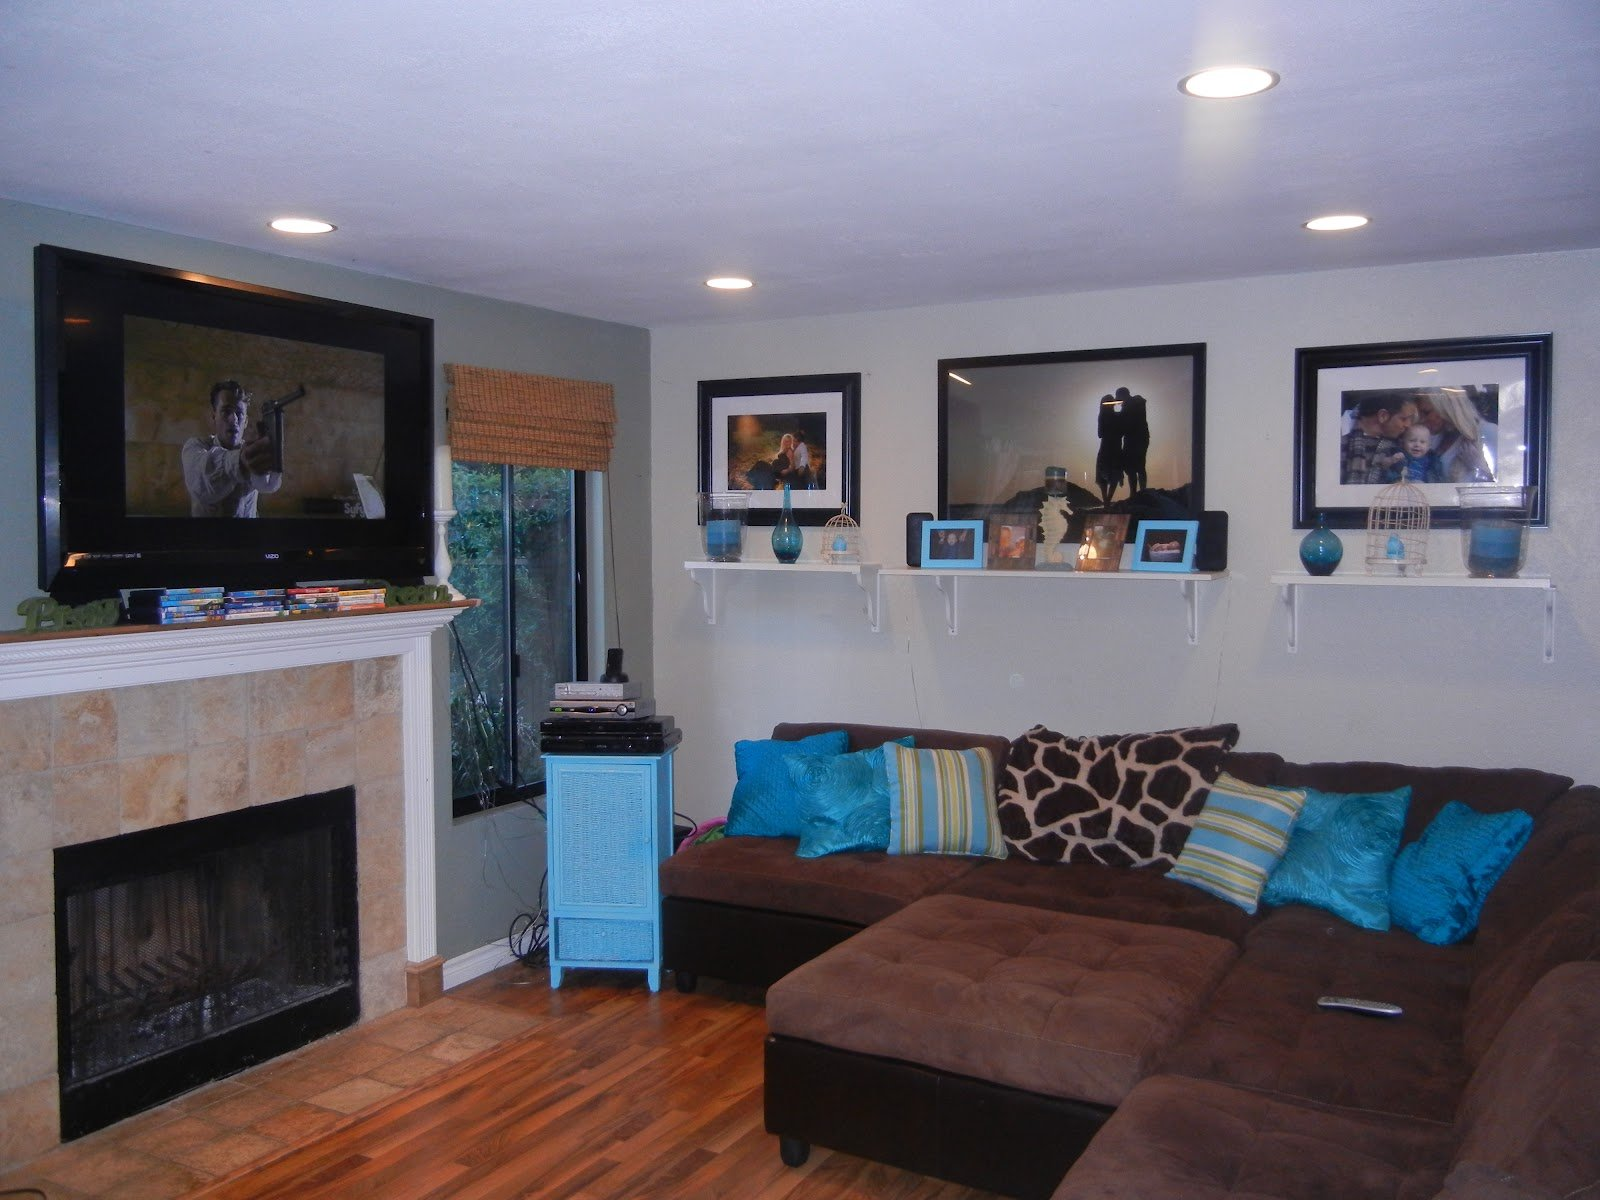 Sleeping living room in brown and turquoise